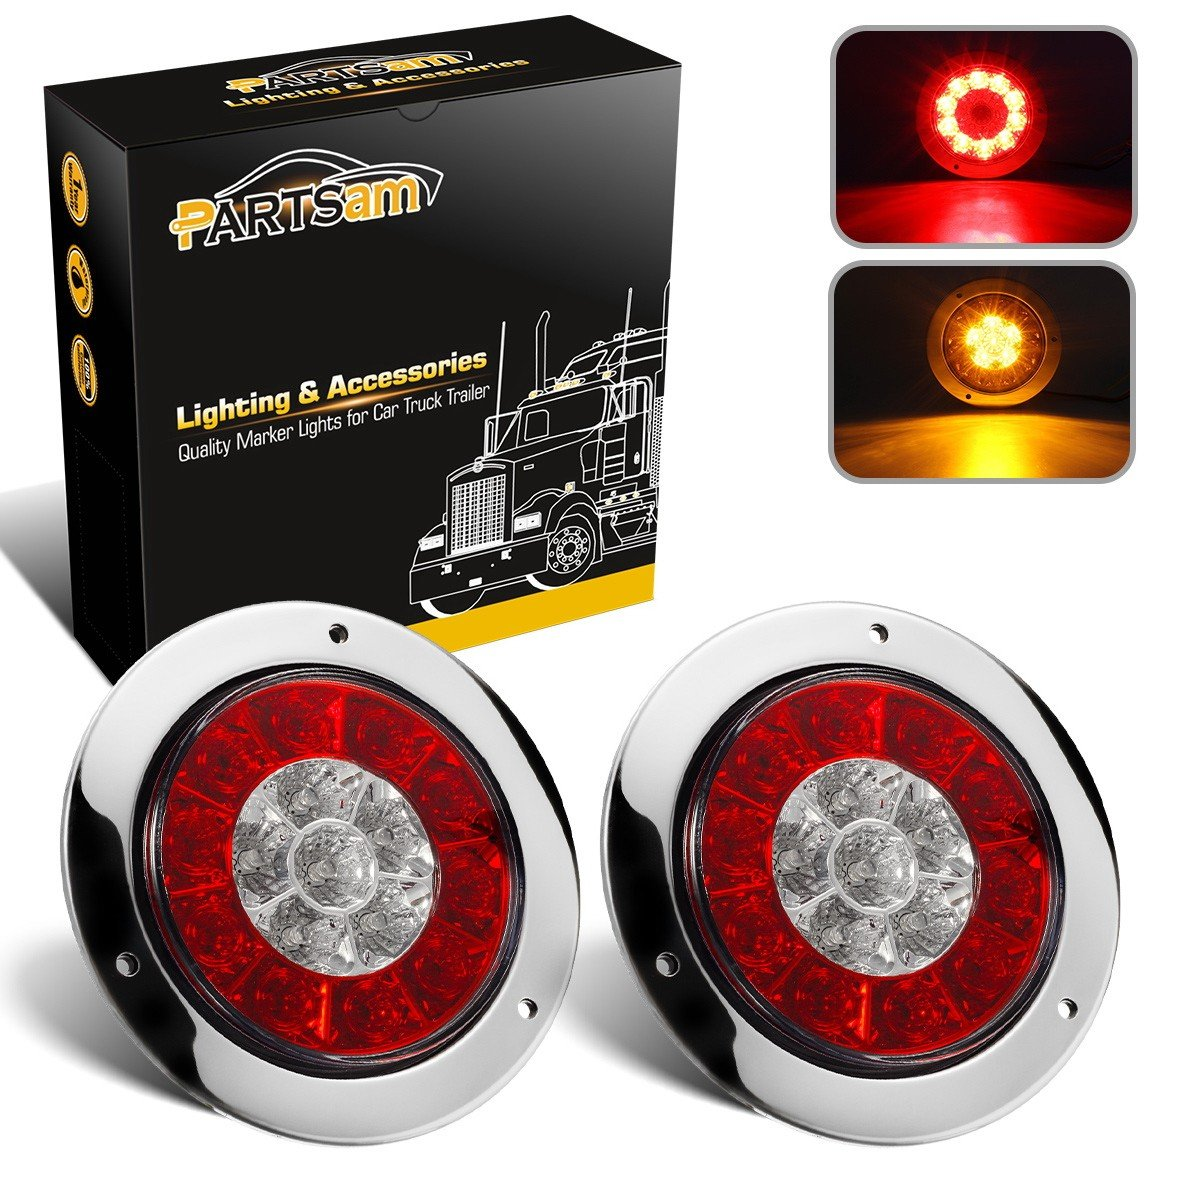 Partsam 4'' inch Round Truck Trailer Led Tail Stop Brake Lights Taillights Running Red and Amber Parking Turn Signal Lights, Sealed Dual Color Round Led Lights w/Miro-reflectors Flange Mount (2Pack)